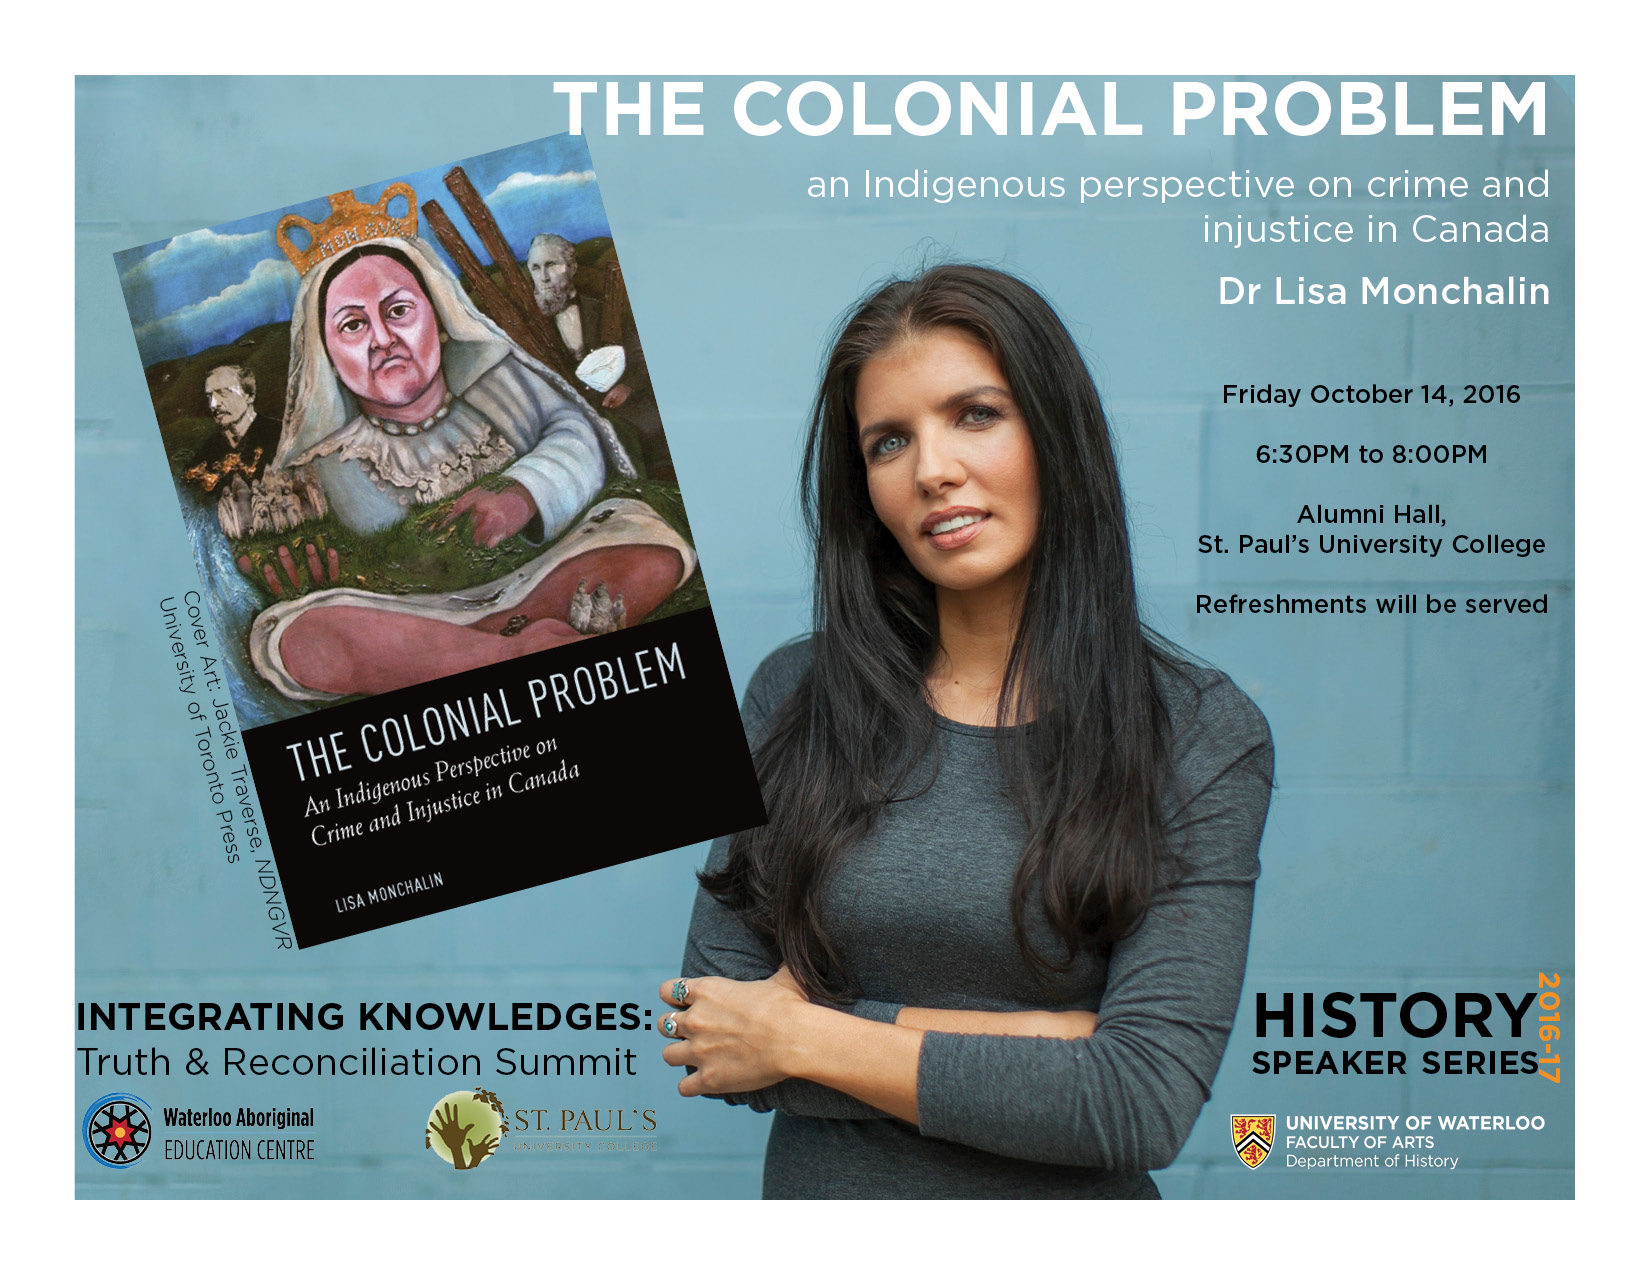 Dr Lisa Monchalin and the cover 'The Colonial Problem'